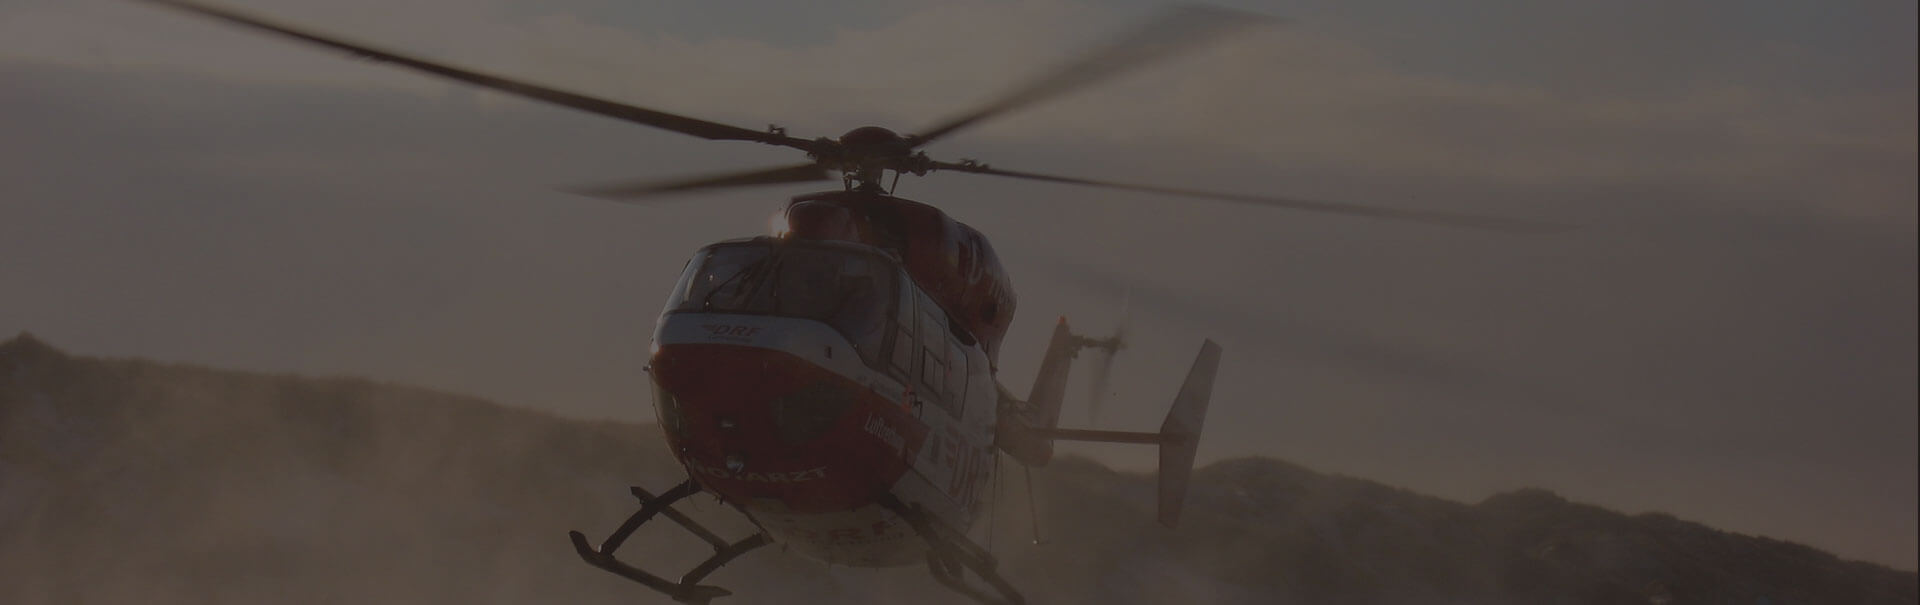 Scantech how to 3d reconstruct the object as big as a helicopter